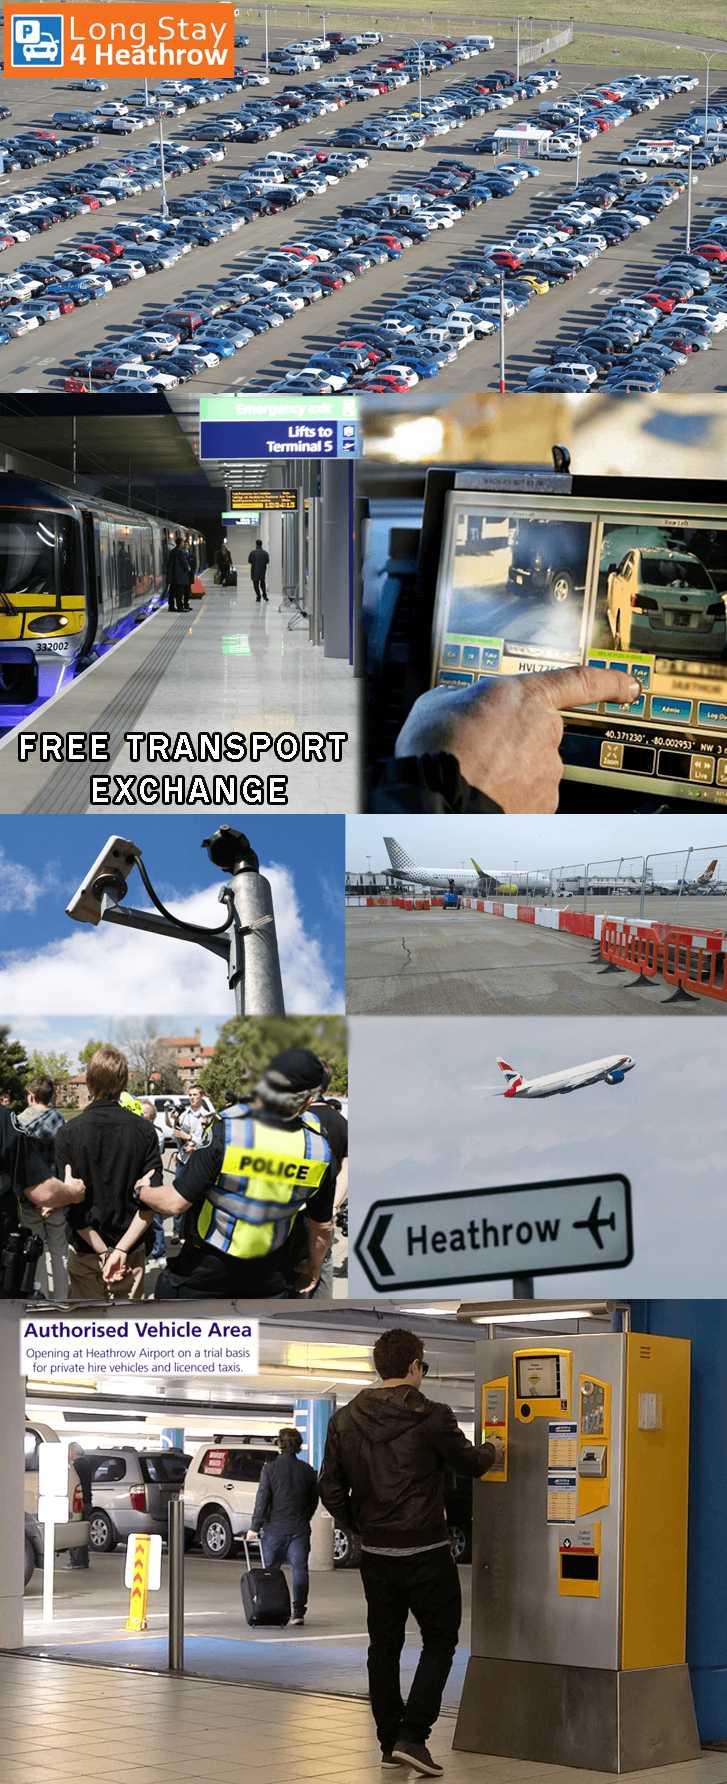 Why Heathrow Long Stay Parking Is First Choice Of Customers Park